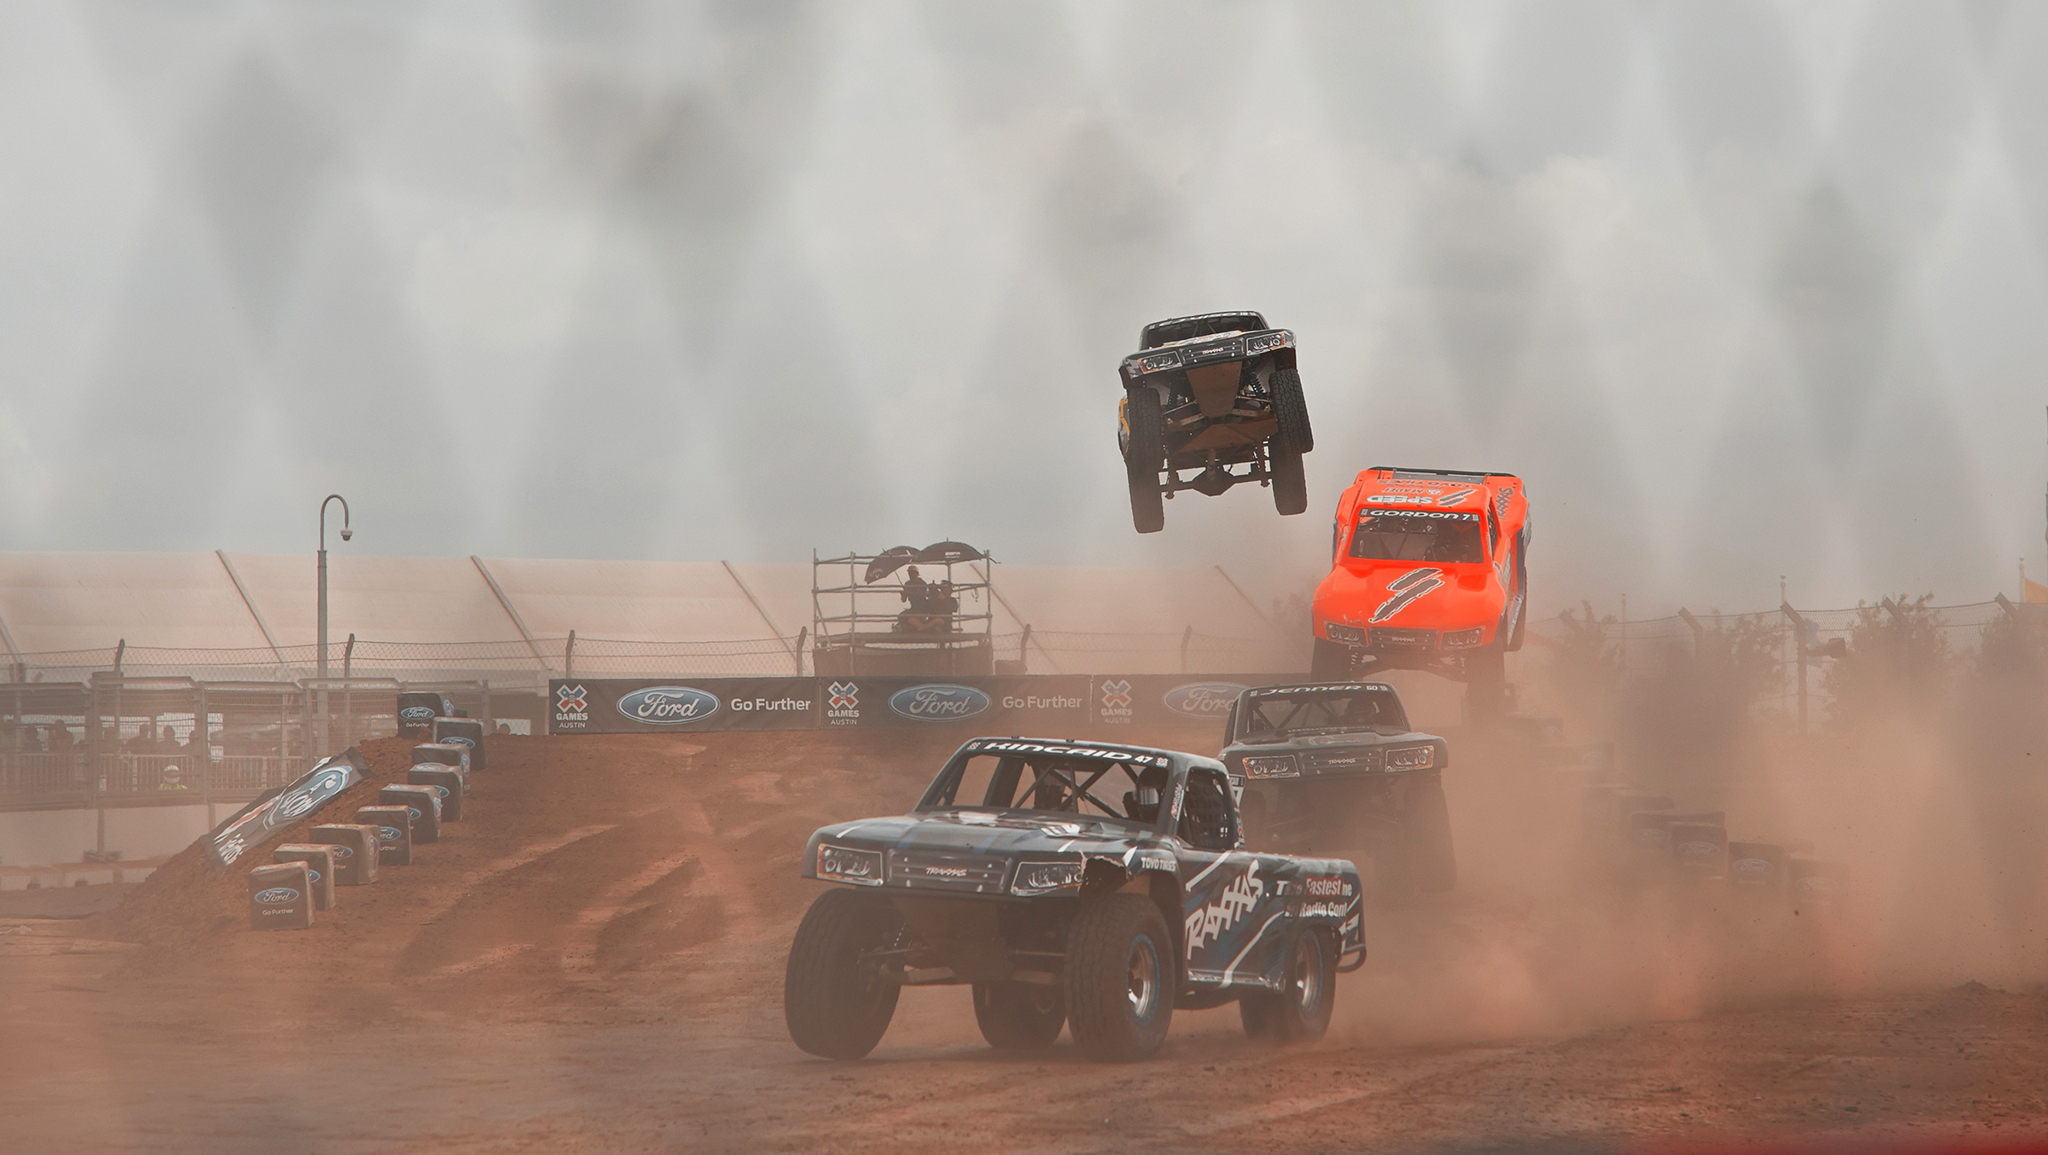 Keegan Kincaid races during finals at the debut of Stadium Super Trucks at X Games Austin 2014. The event will be called Off-Road Truck Racing this year.